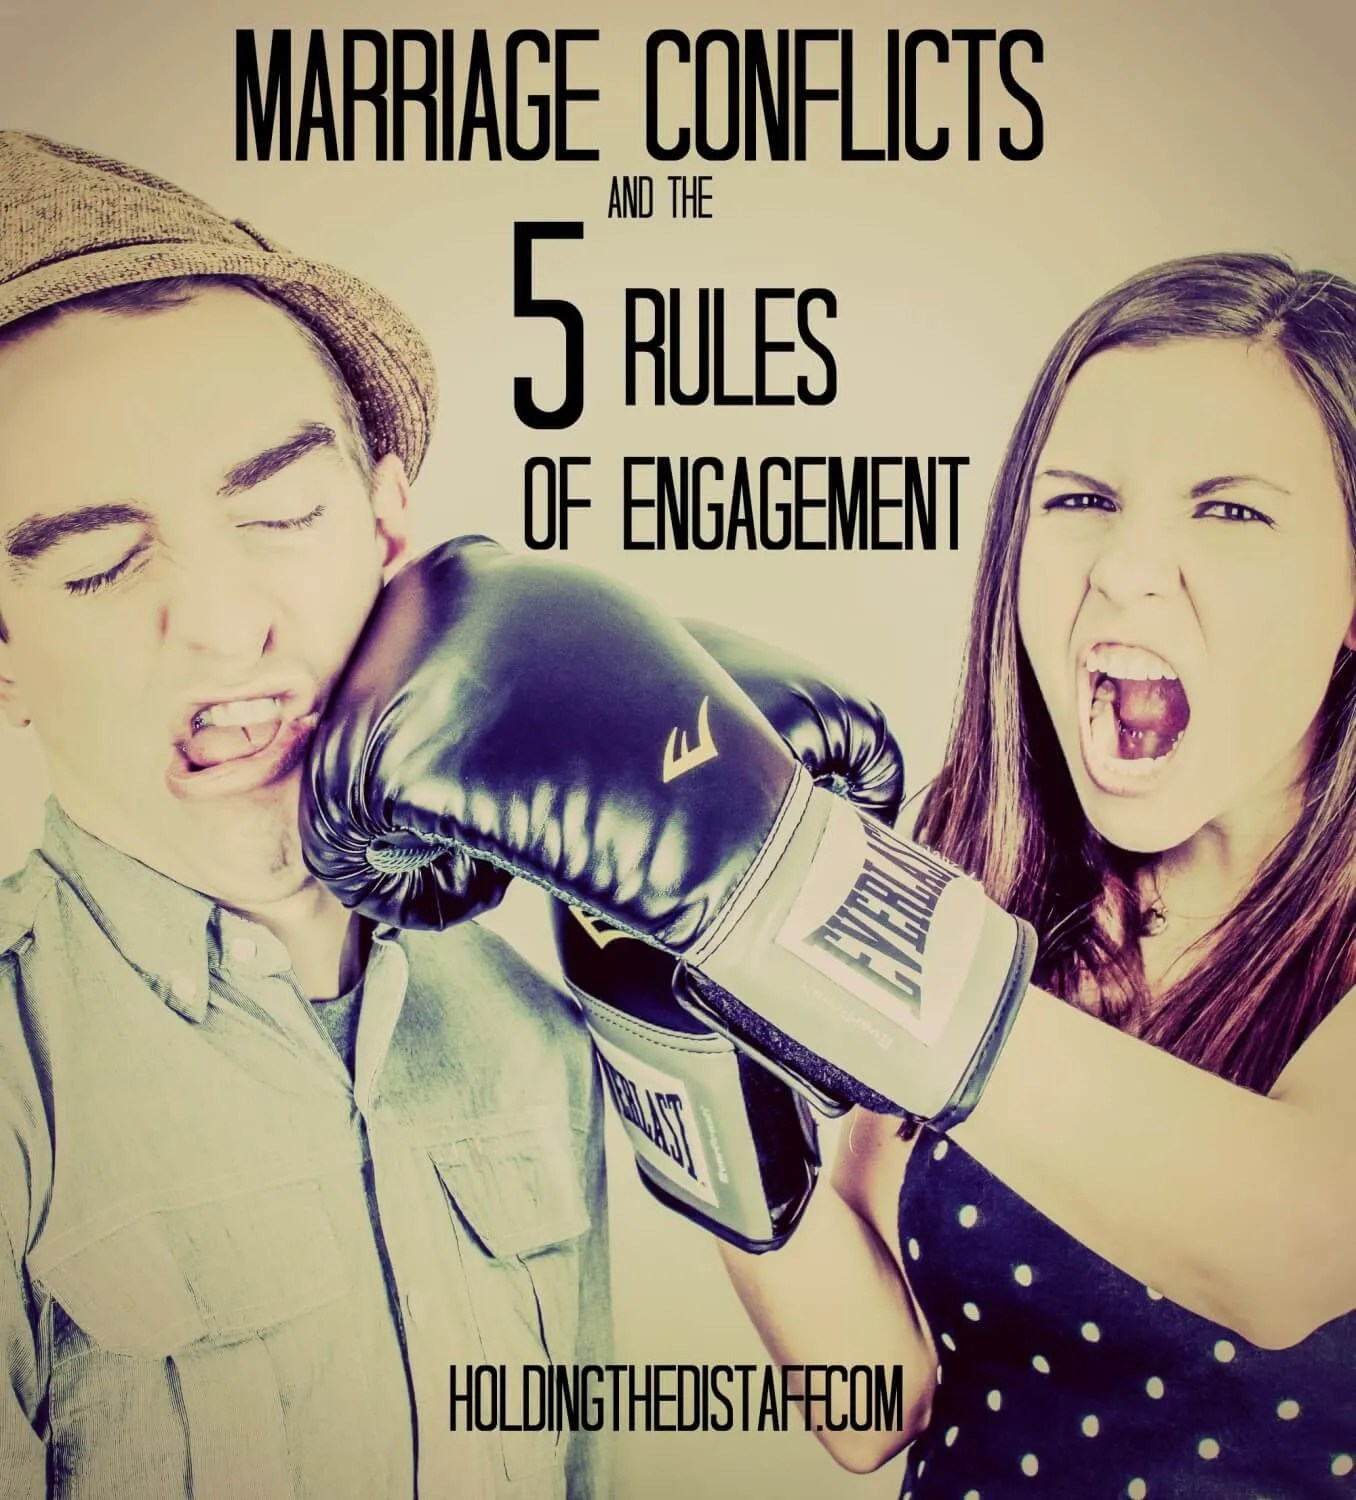 Marriage Conflicts and the 5 Rules of Engagement: Learning how to fight fair is key to a healthy marriage.